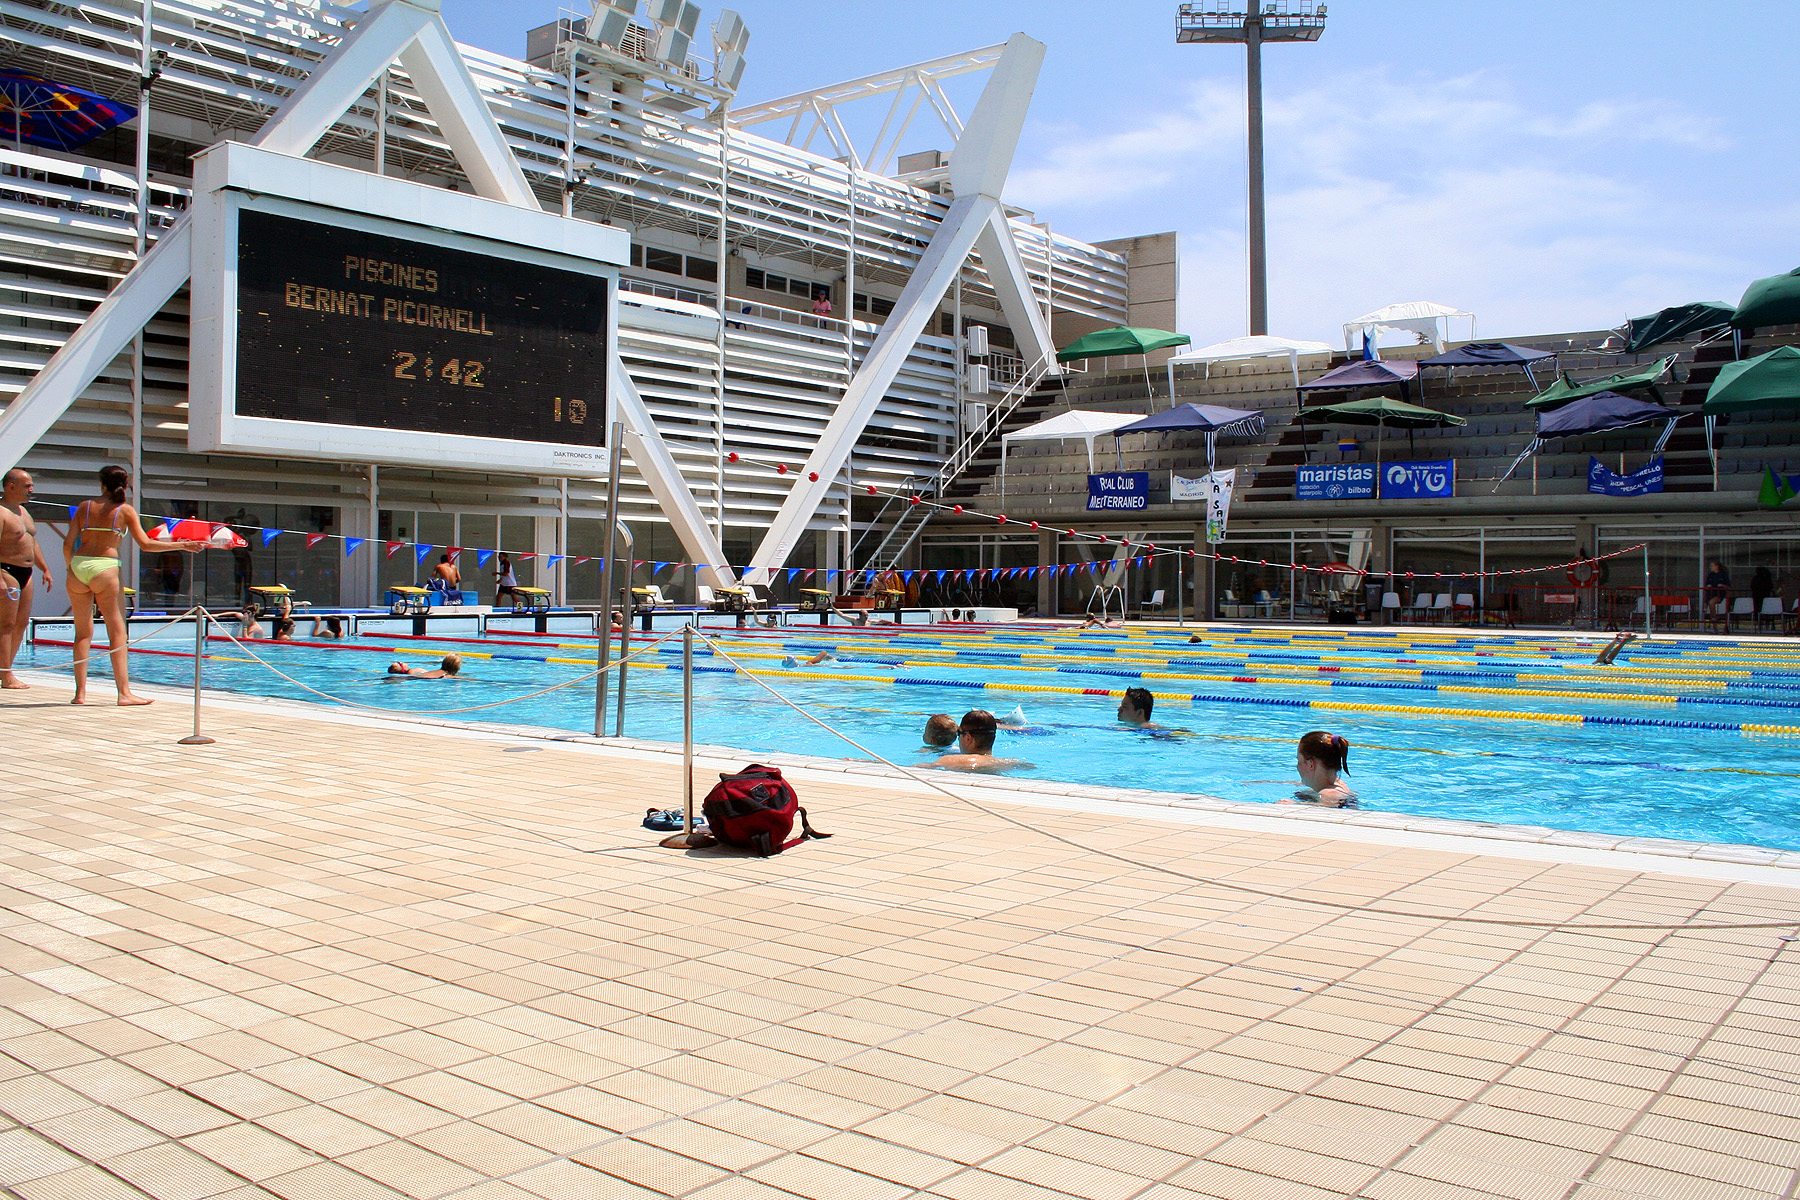 Olympic swimmingpool, barcelona, spain photo